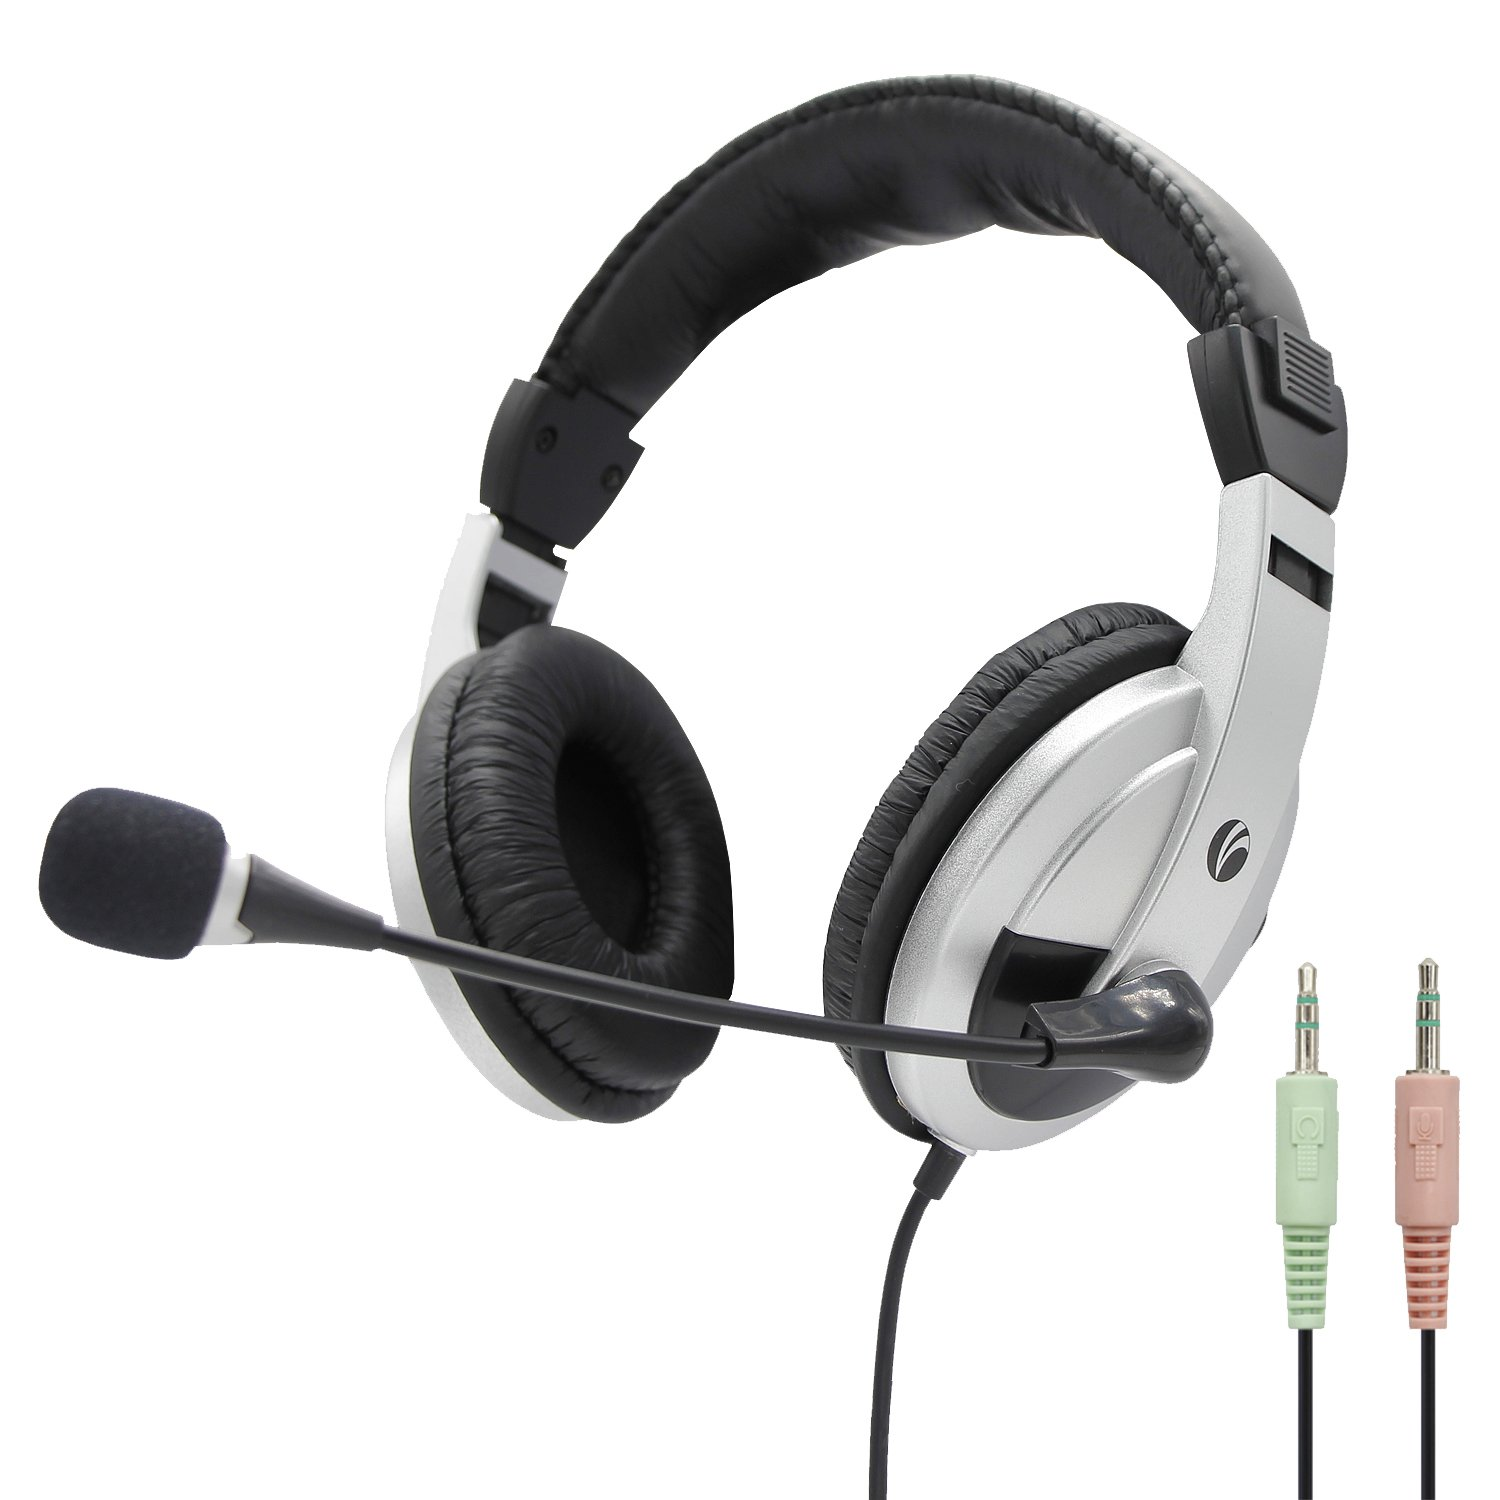 VCOM Computer Headset with Adjustable Microphone, Over Ear Stereo Gaming Headphones with Volume Control Noise Cancelling for School Home Office Call Center Business Use Skype Chat - Black